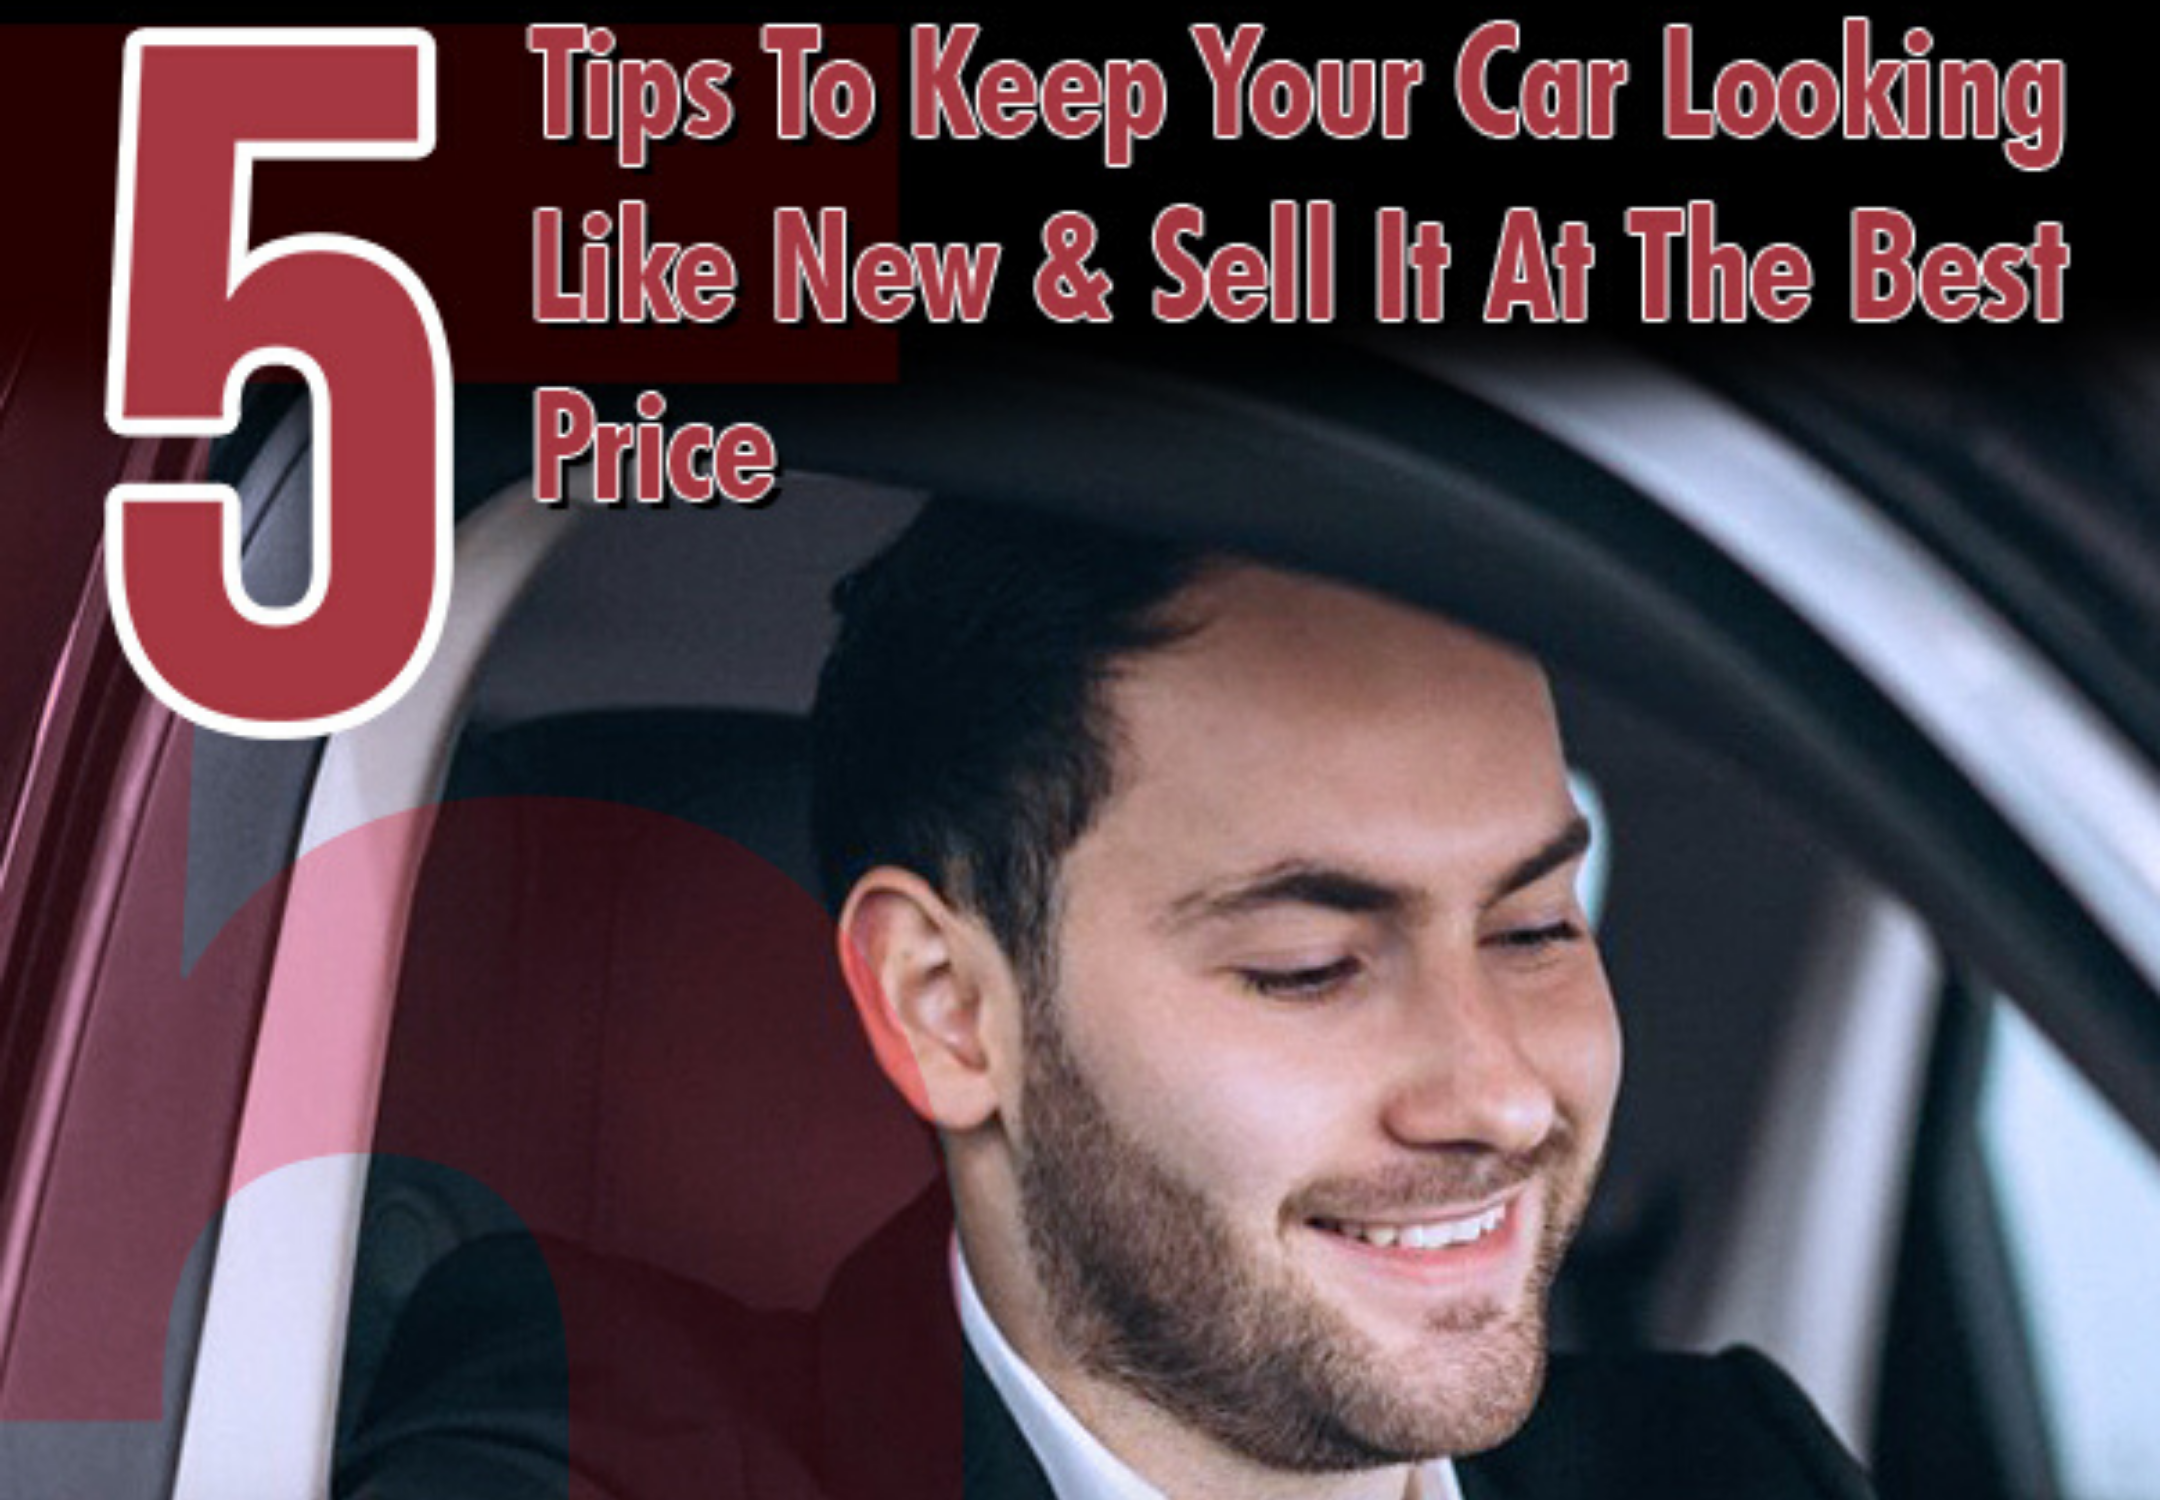 5 Tips to Keep Your Car Looking Like New & Sell It at the Best Price